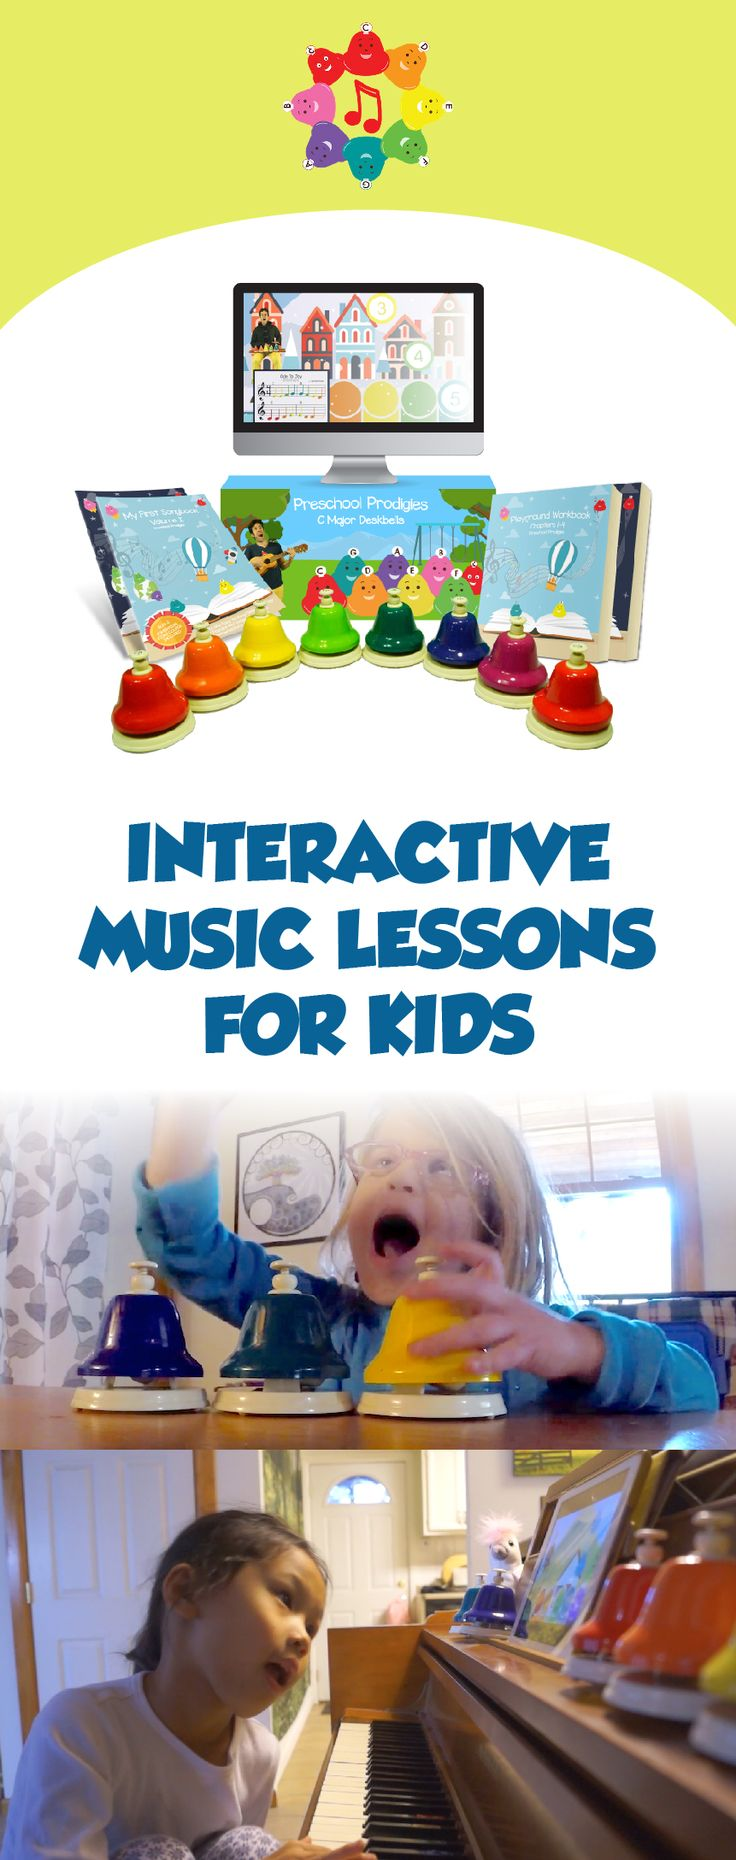 "Interactive Music Lessons for Kids Now Featuring Primary School Lessons and Songs!  Free Starter Program & ""Raising a Young Musician"" eBook"